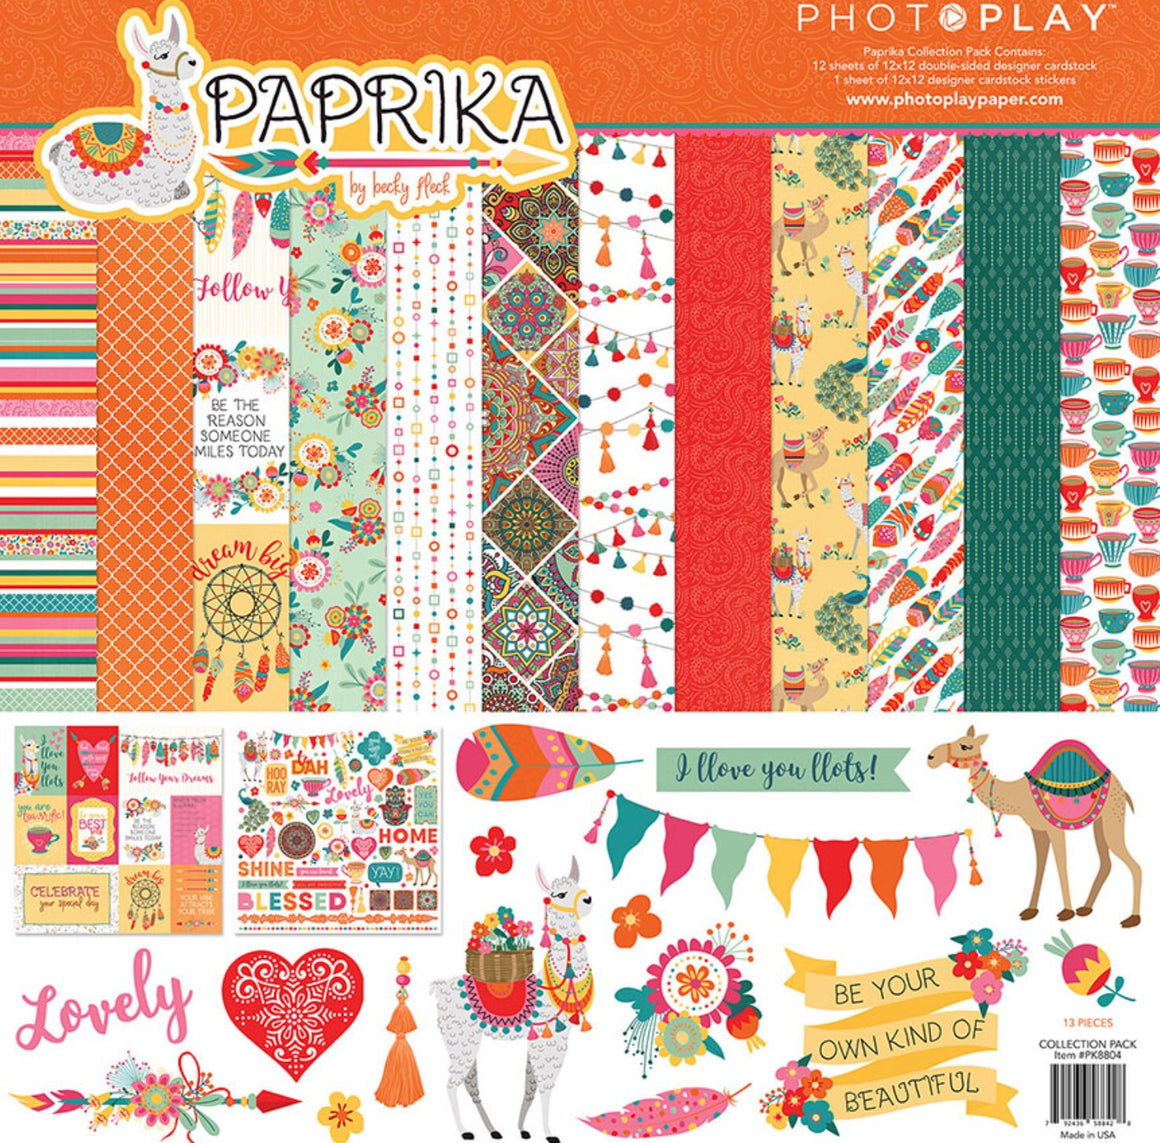 Photoplay 12x12 collection kit- Paprika